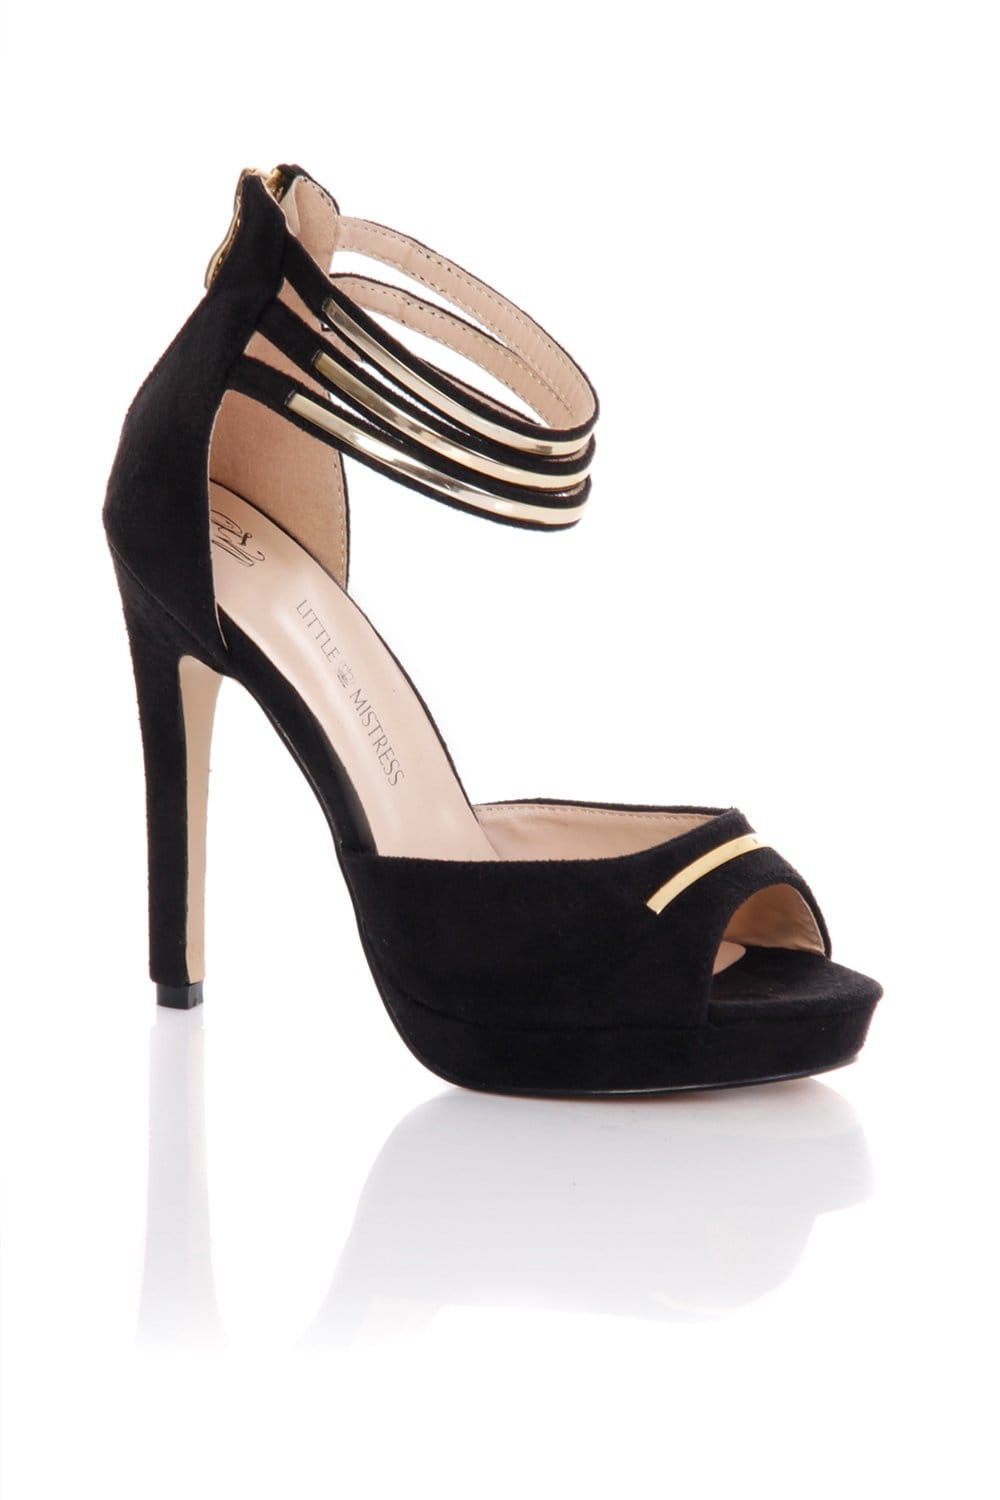 Little Mistress Black Double Ankle Strap Peep Toe Heels